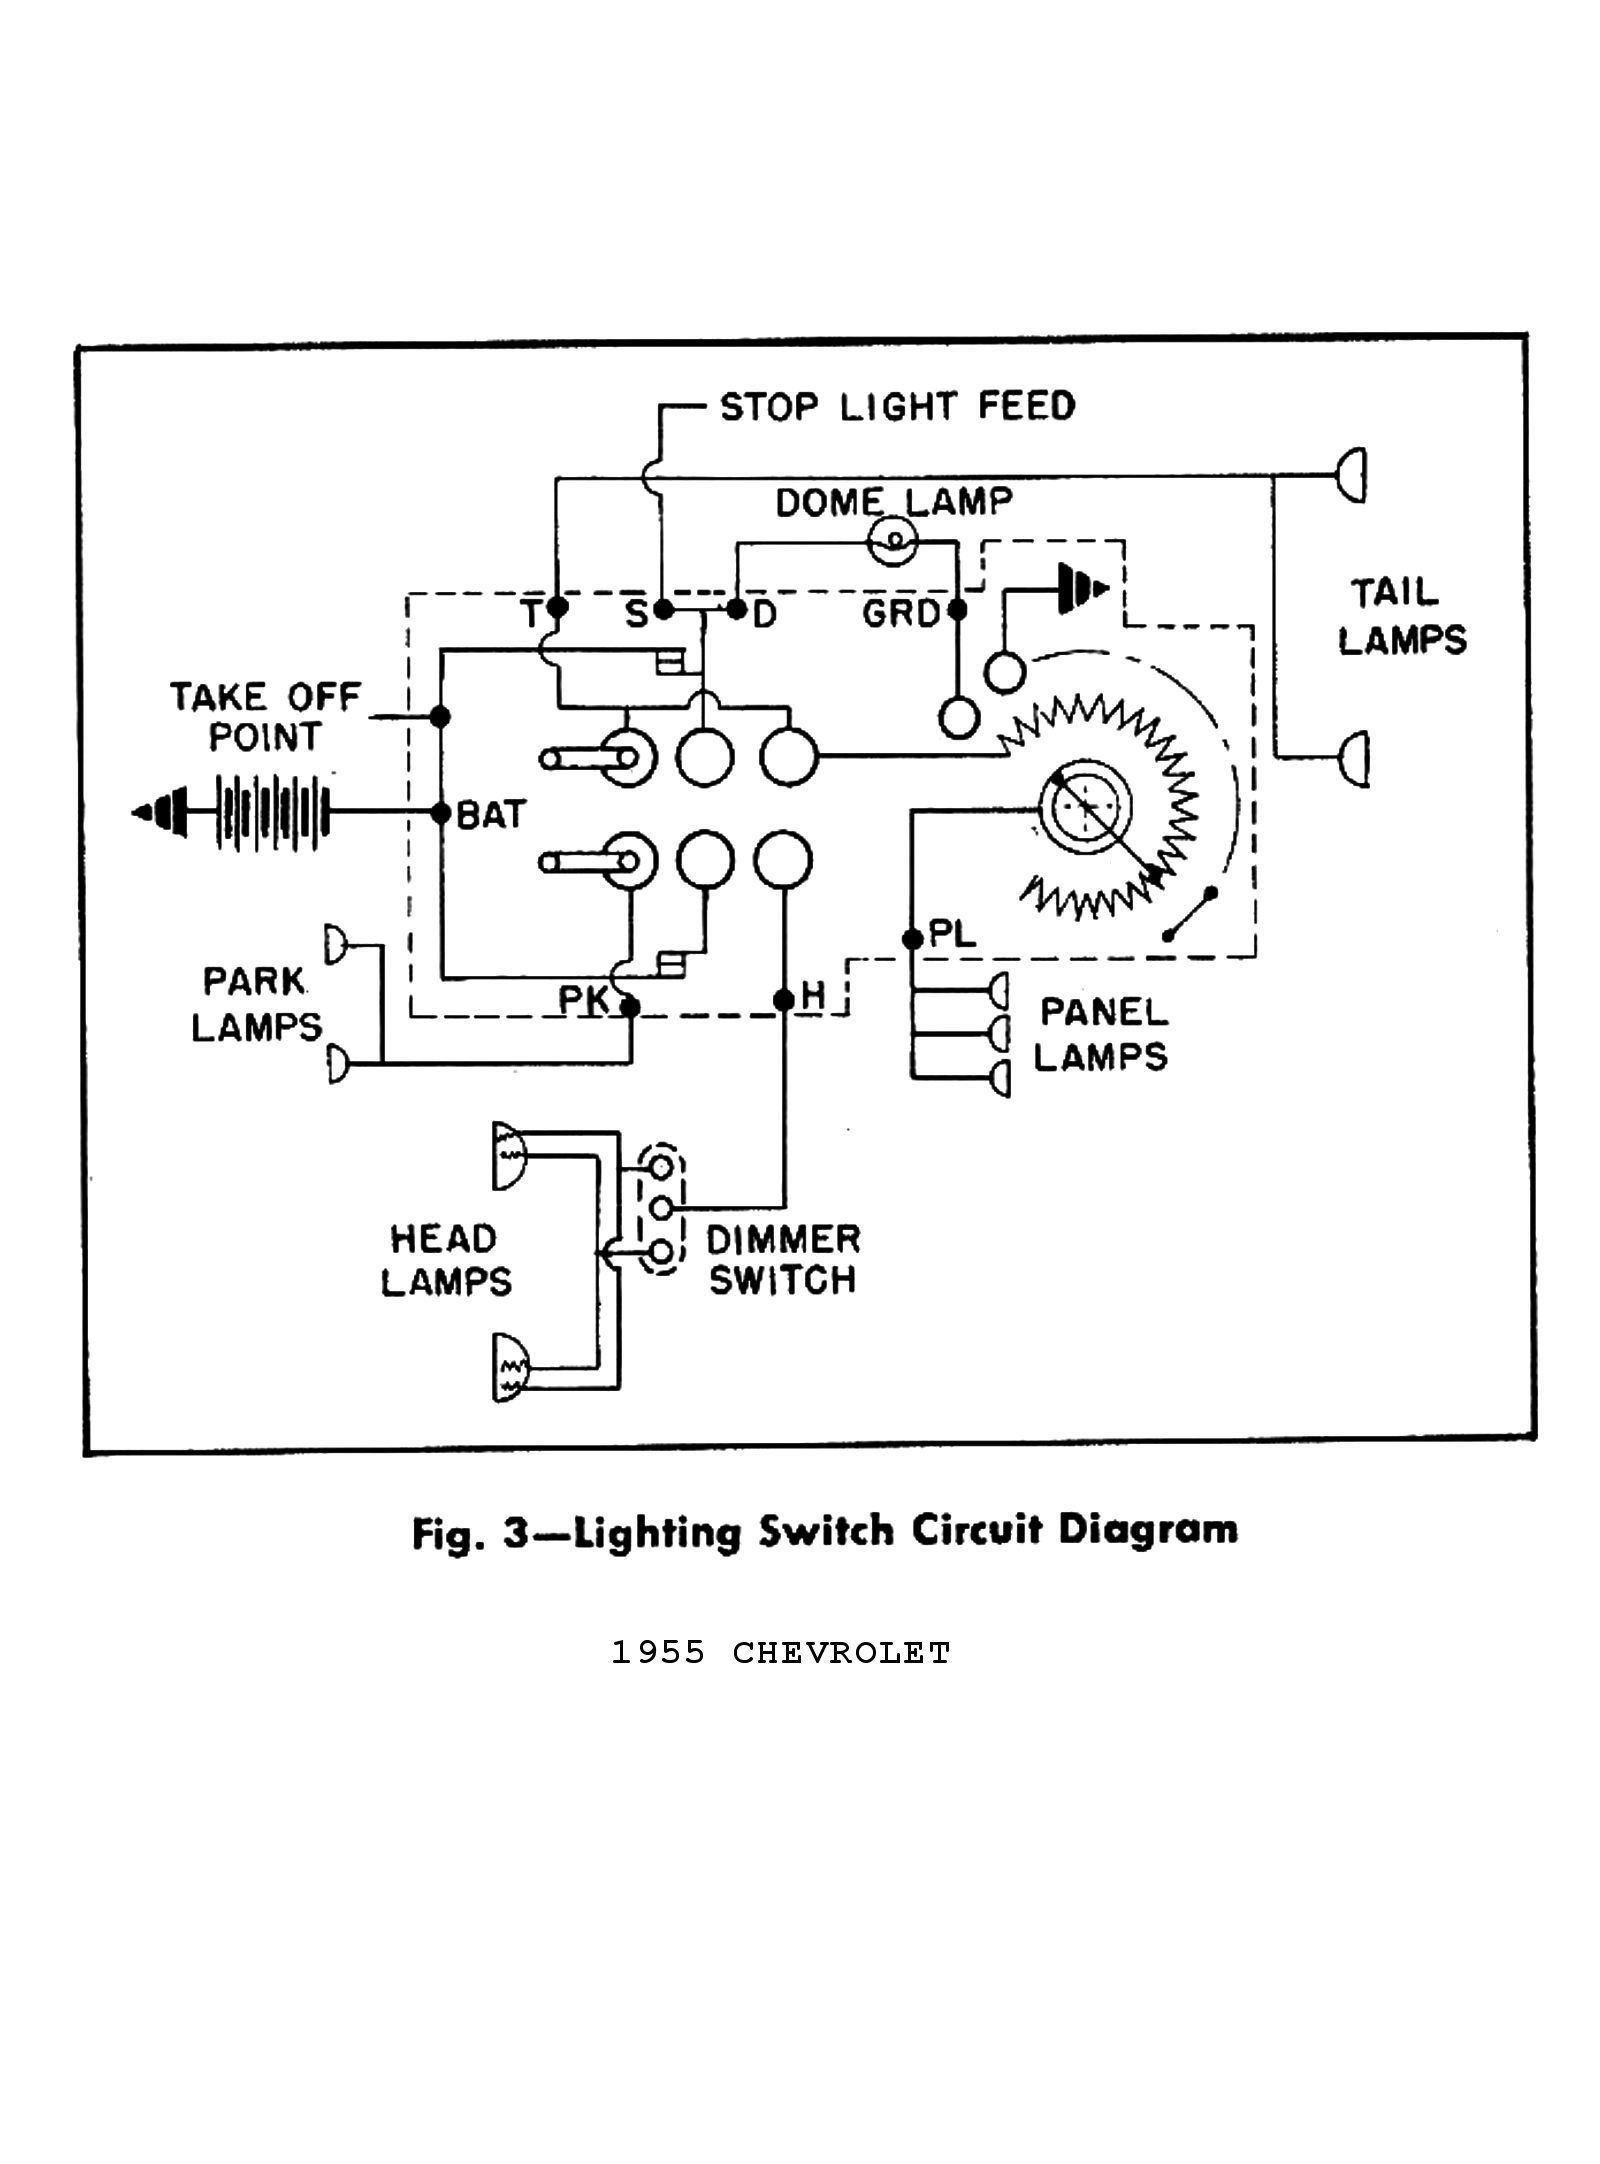 small resolution of light switch wiring for 55 chevrolet data diagram schematic 51 turn signal switch and wiring question chevytalk free source 1958 chevrolet steering